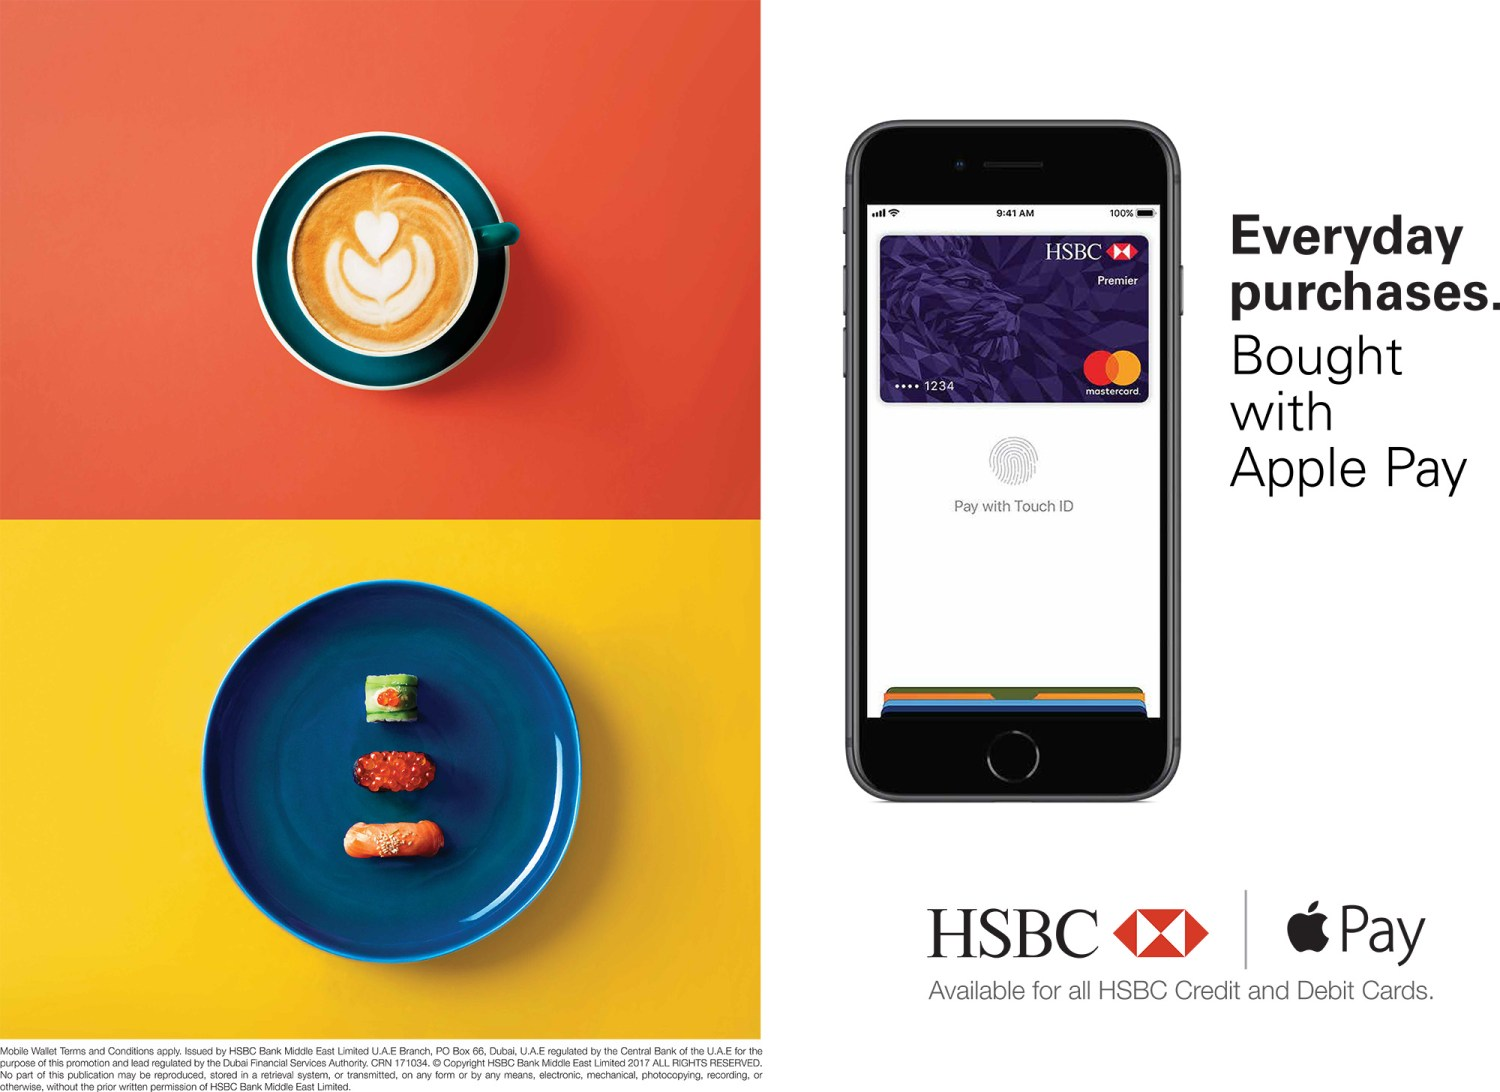 HSBC Apple Pay